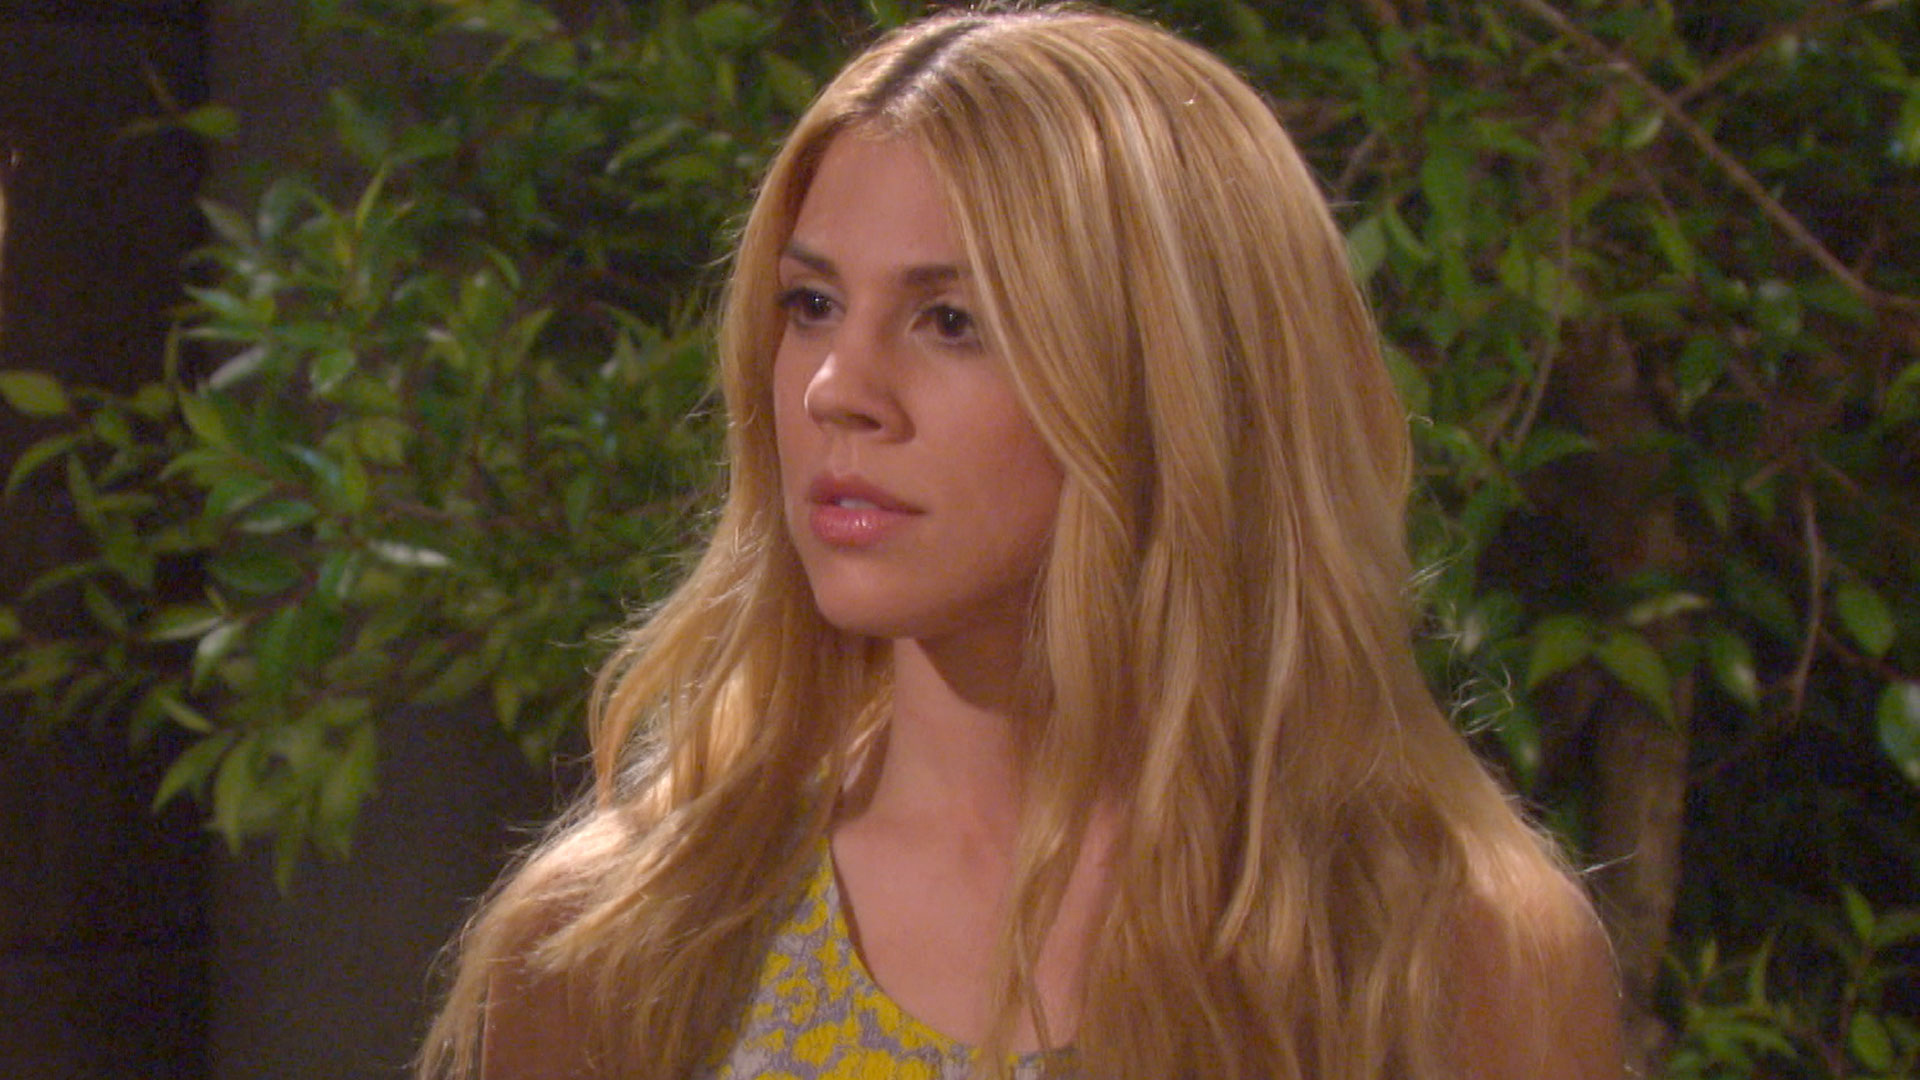 Abigail warns Sami she has the means to destroy her.